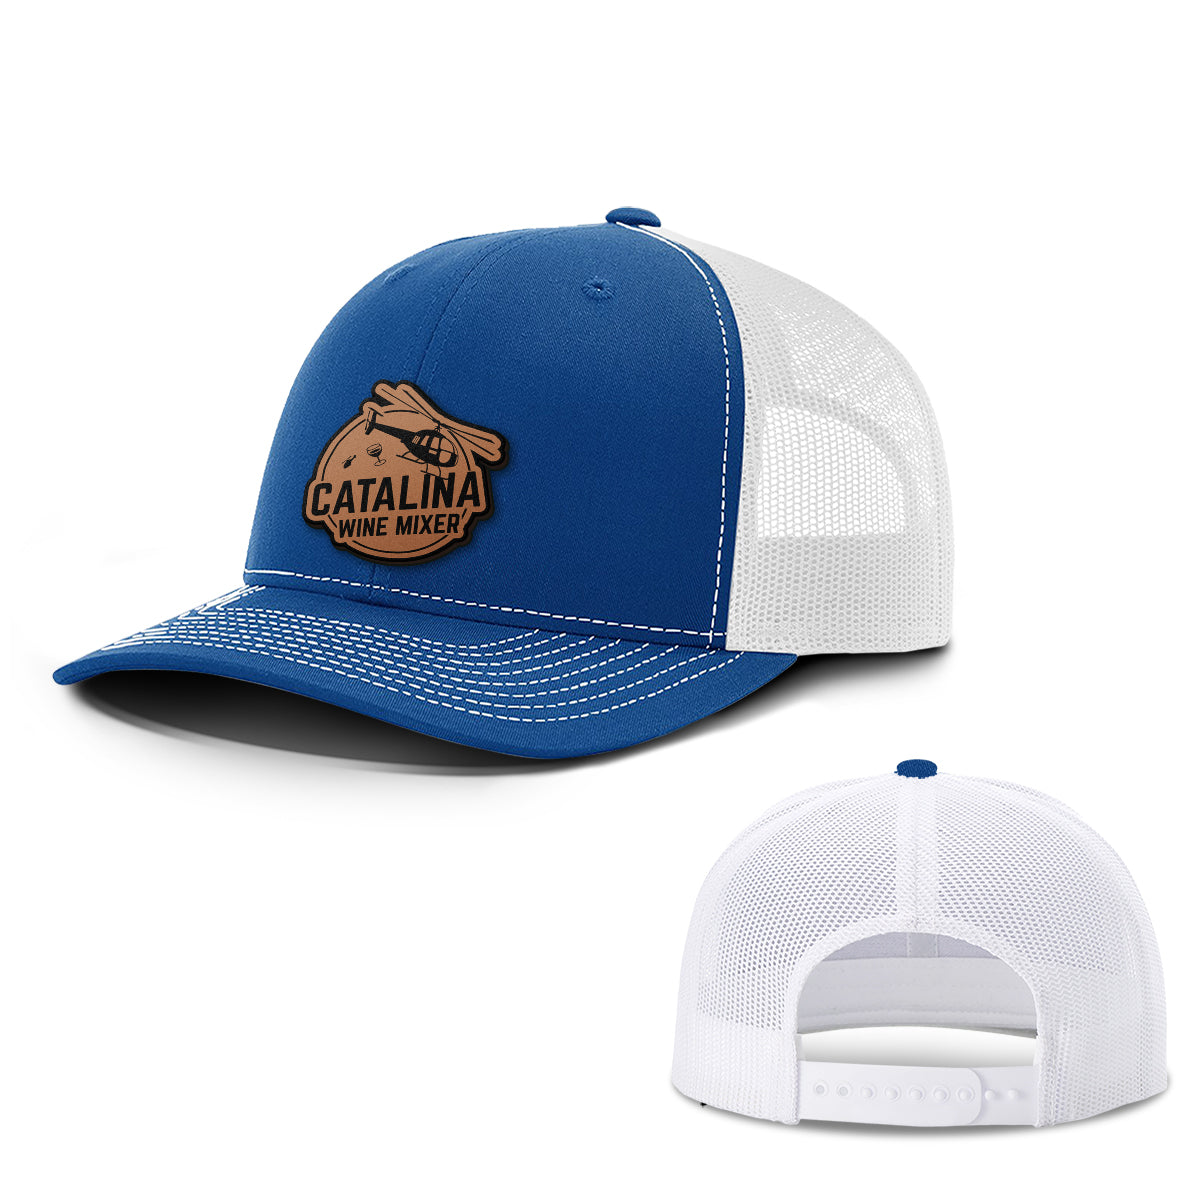 Catalina Wine Mixer Leather Patch Hats